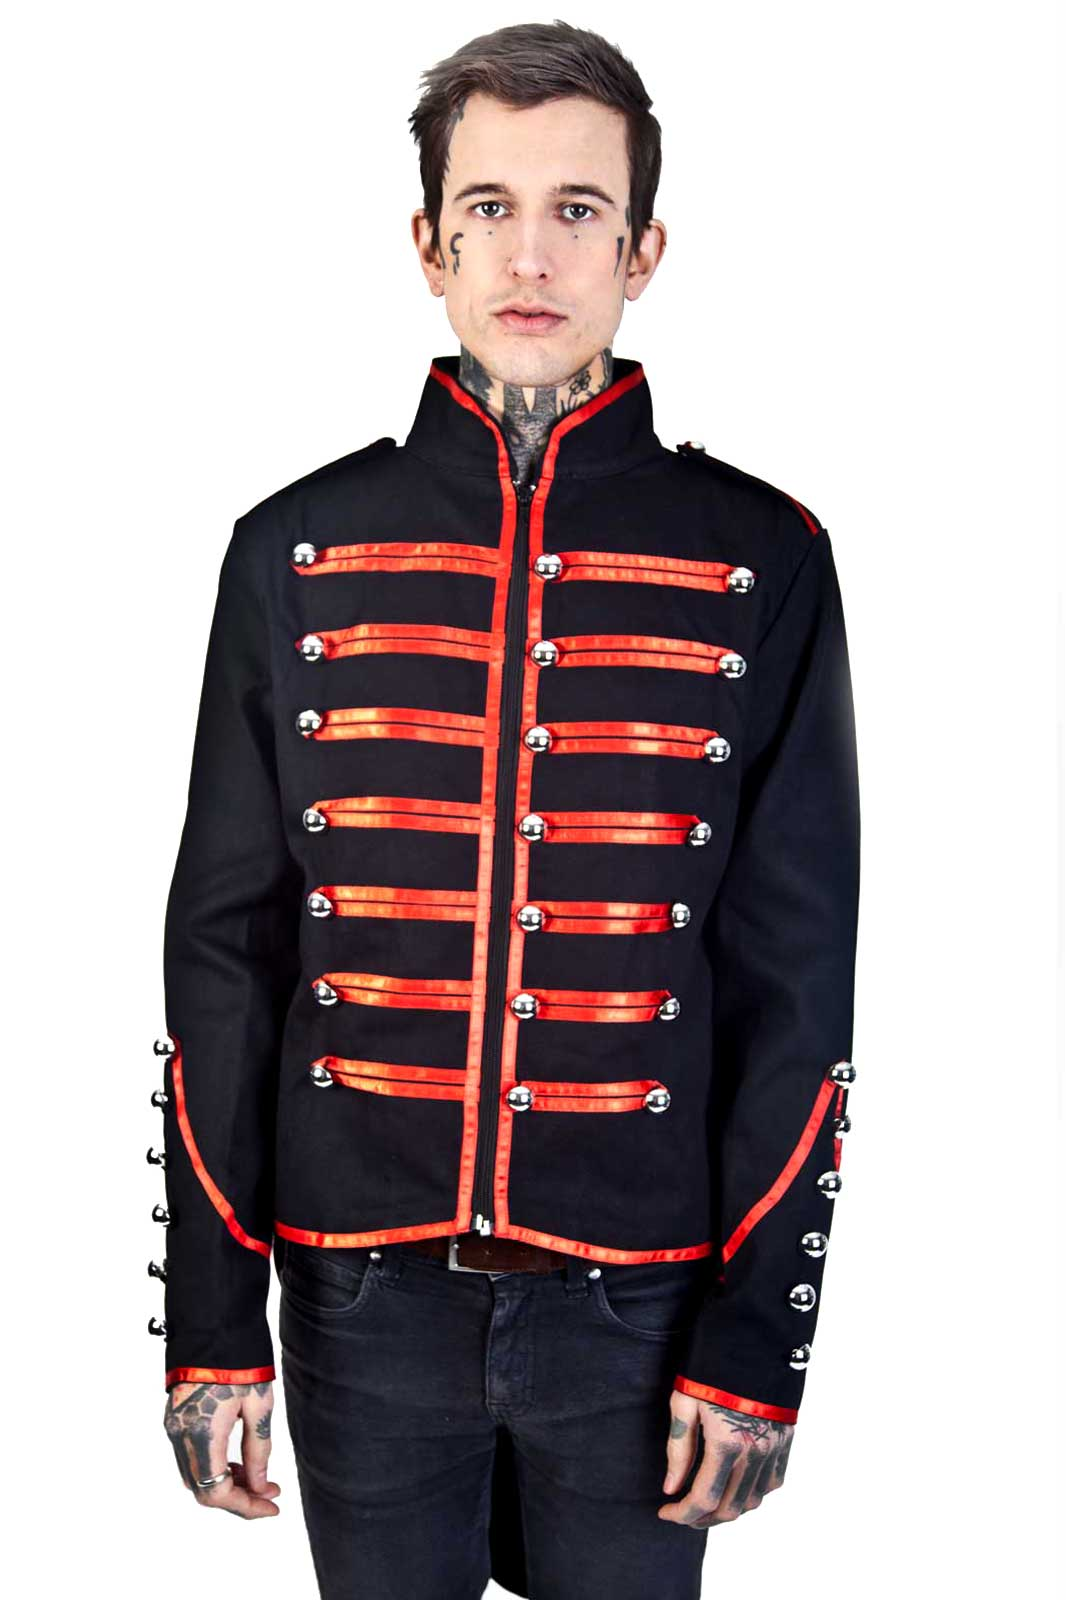 Military Drummer Tail Coat Front